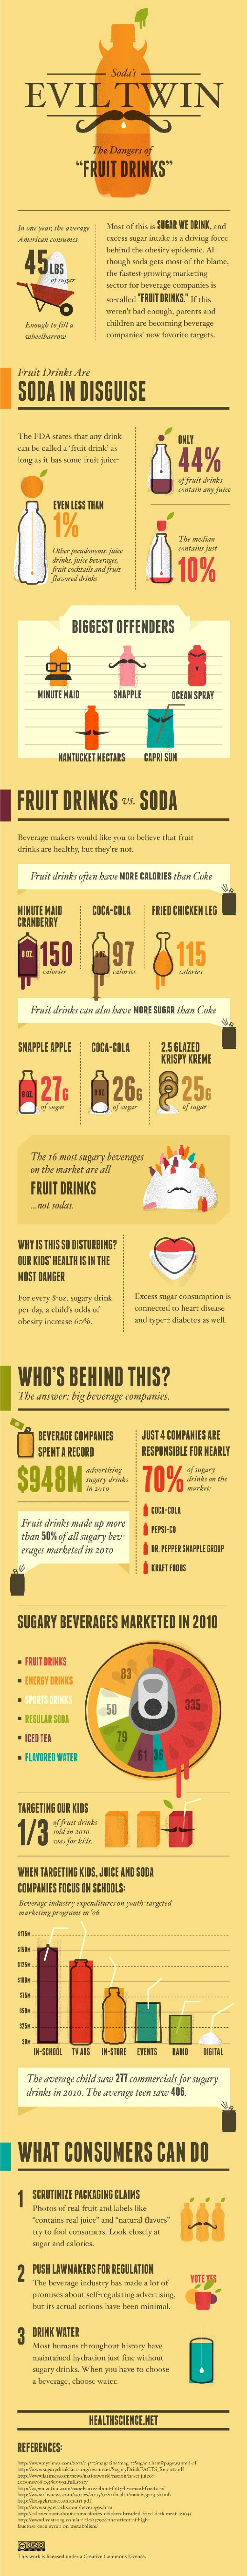 The-Dangers-of-Fruit-Drinks-Infographic